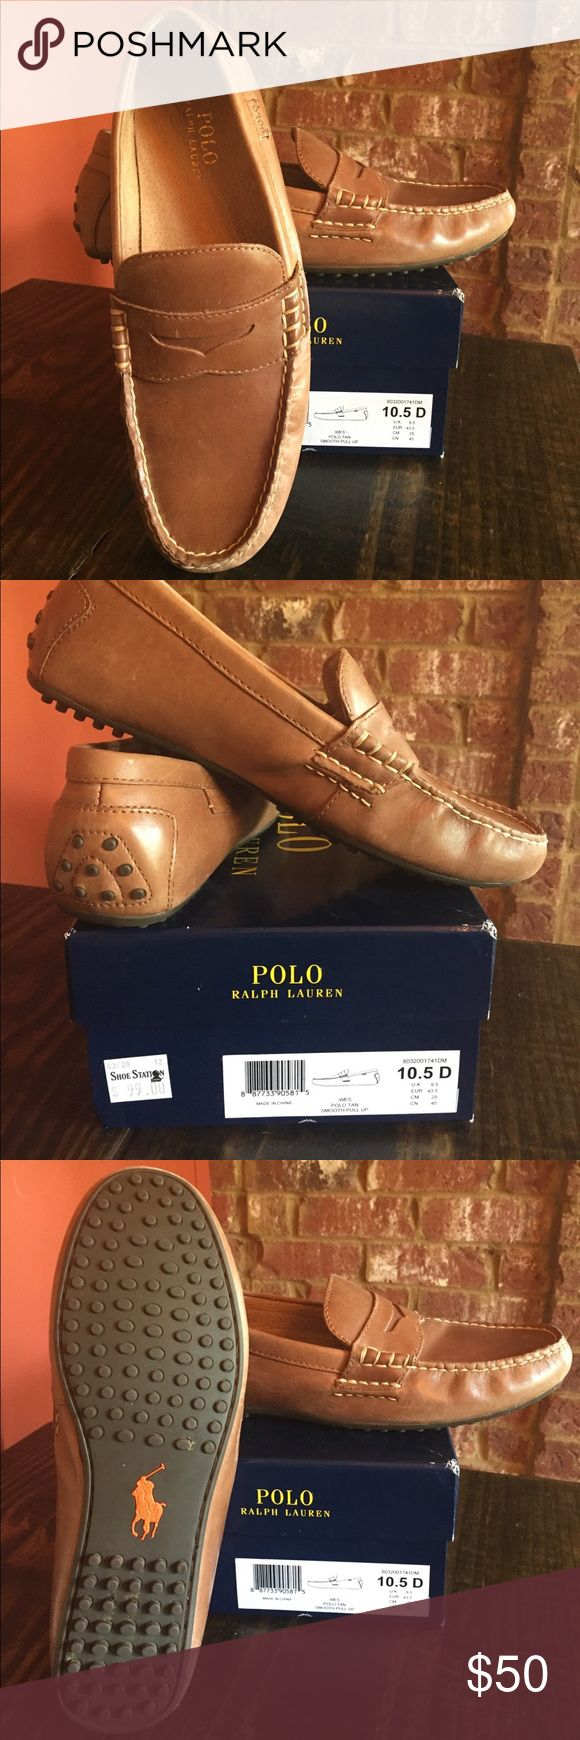 Men's Polo shoes Perfect condition! My sons fast growing foot is your gain! Worn only about 4 times and were always stored in original box. Polo by Ralph Lauren Shoes Loafers & Slip-Ons